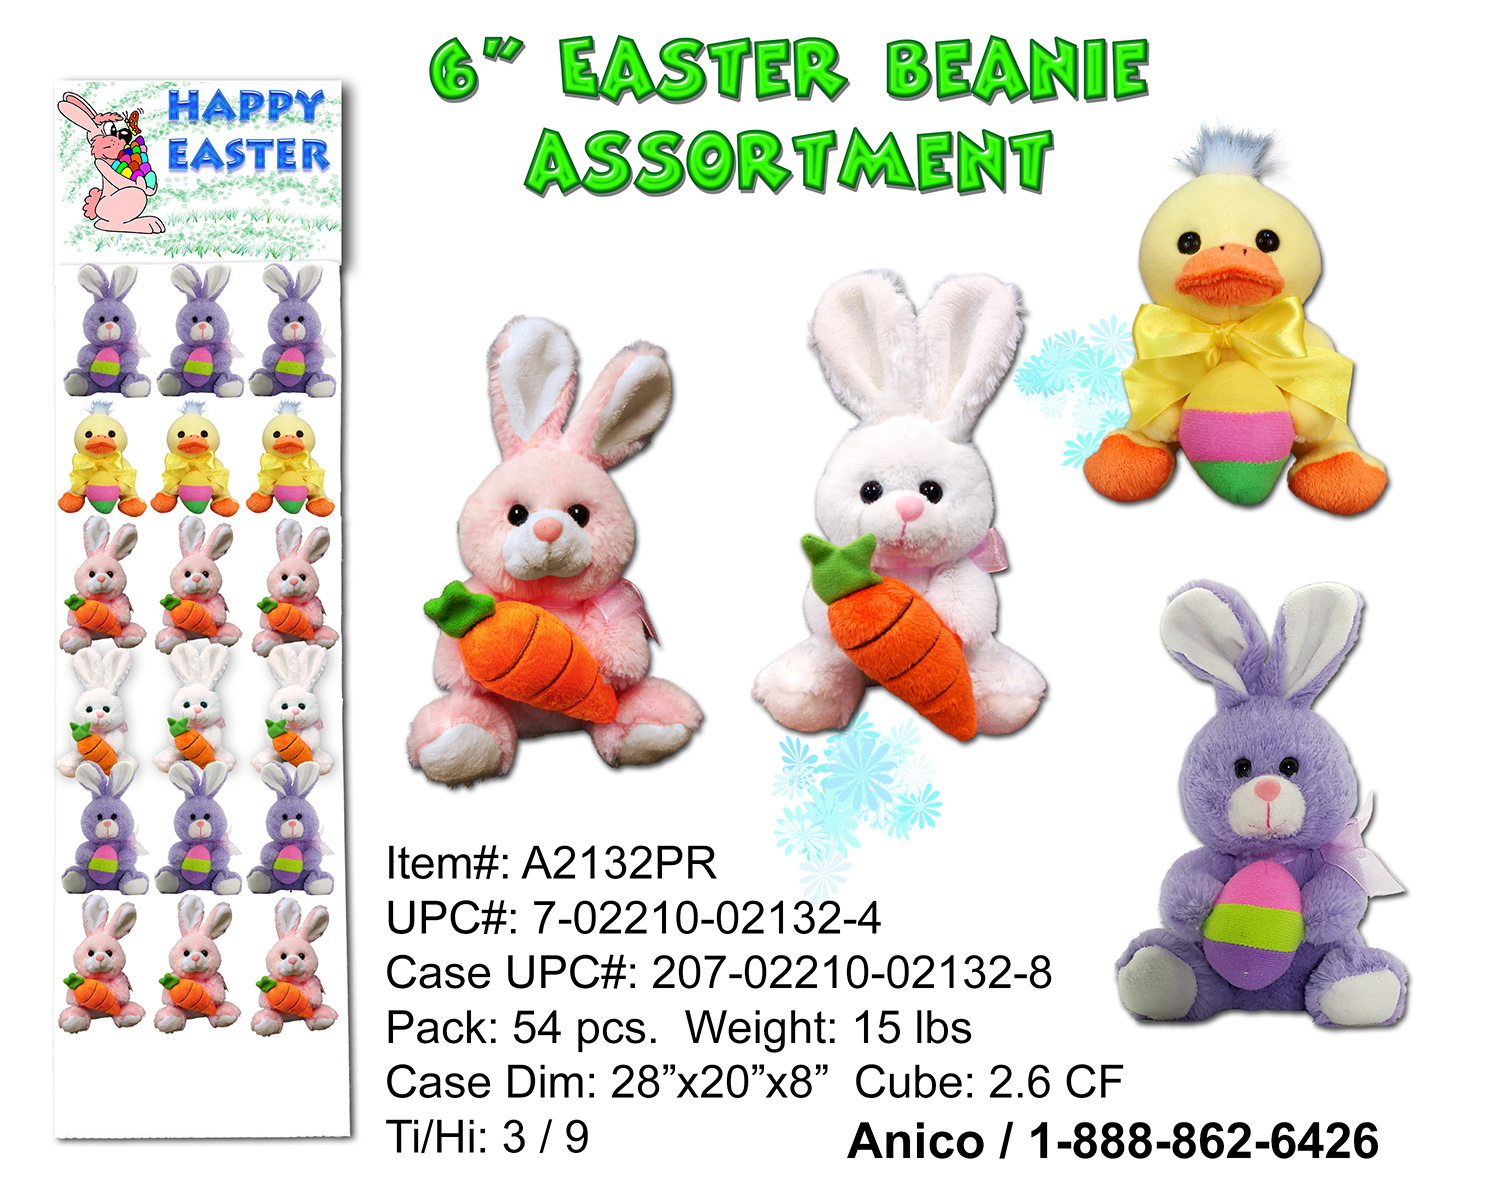 A2132PR Easter Beanie Sheet copy.jpg